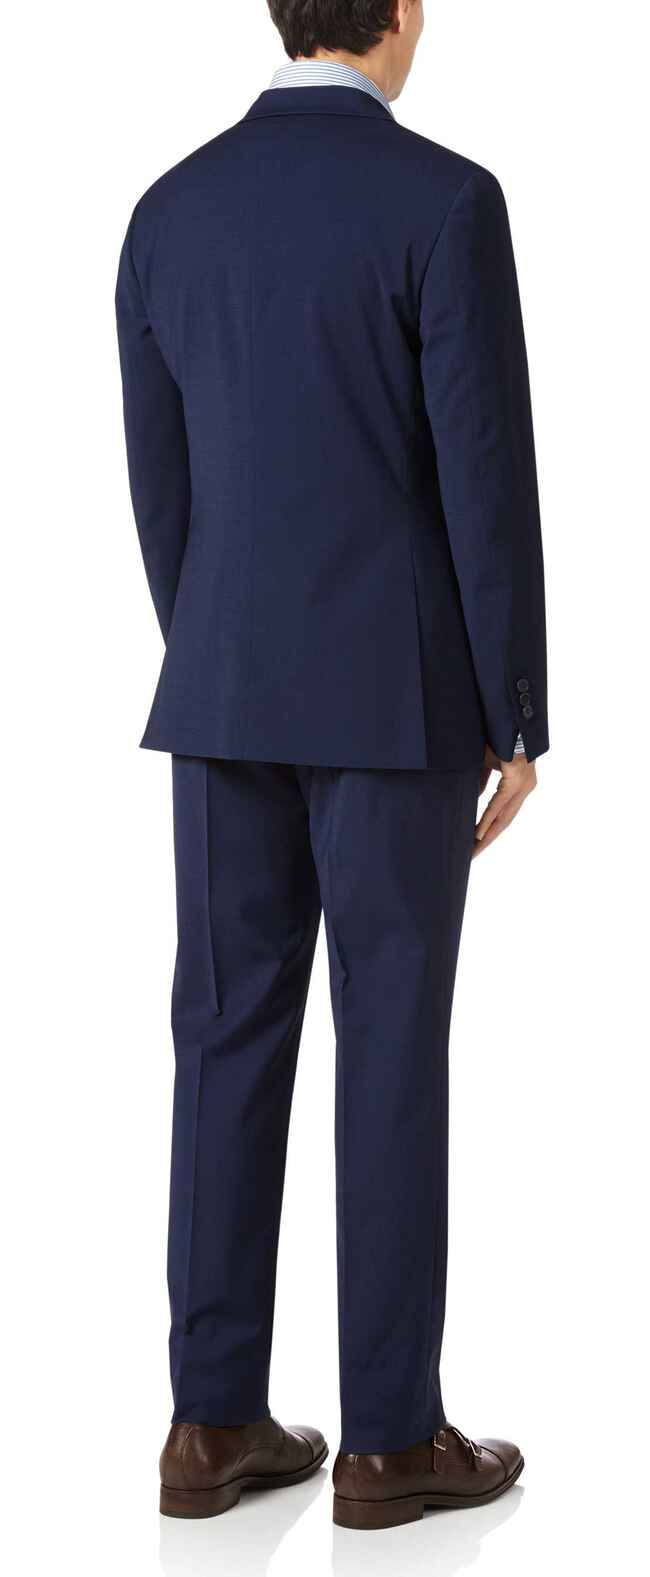 Royal blue slim fit performance suit